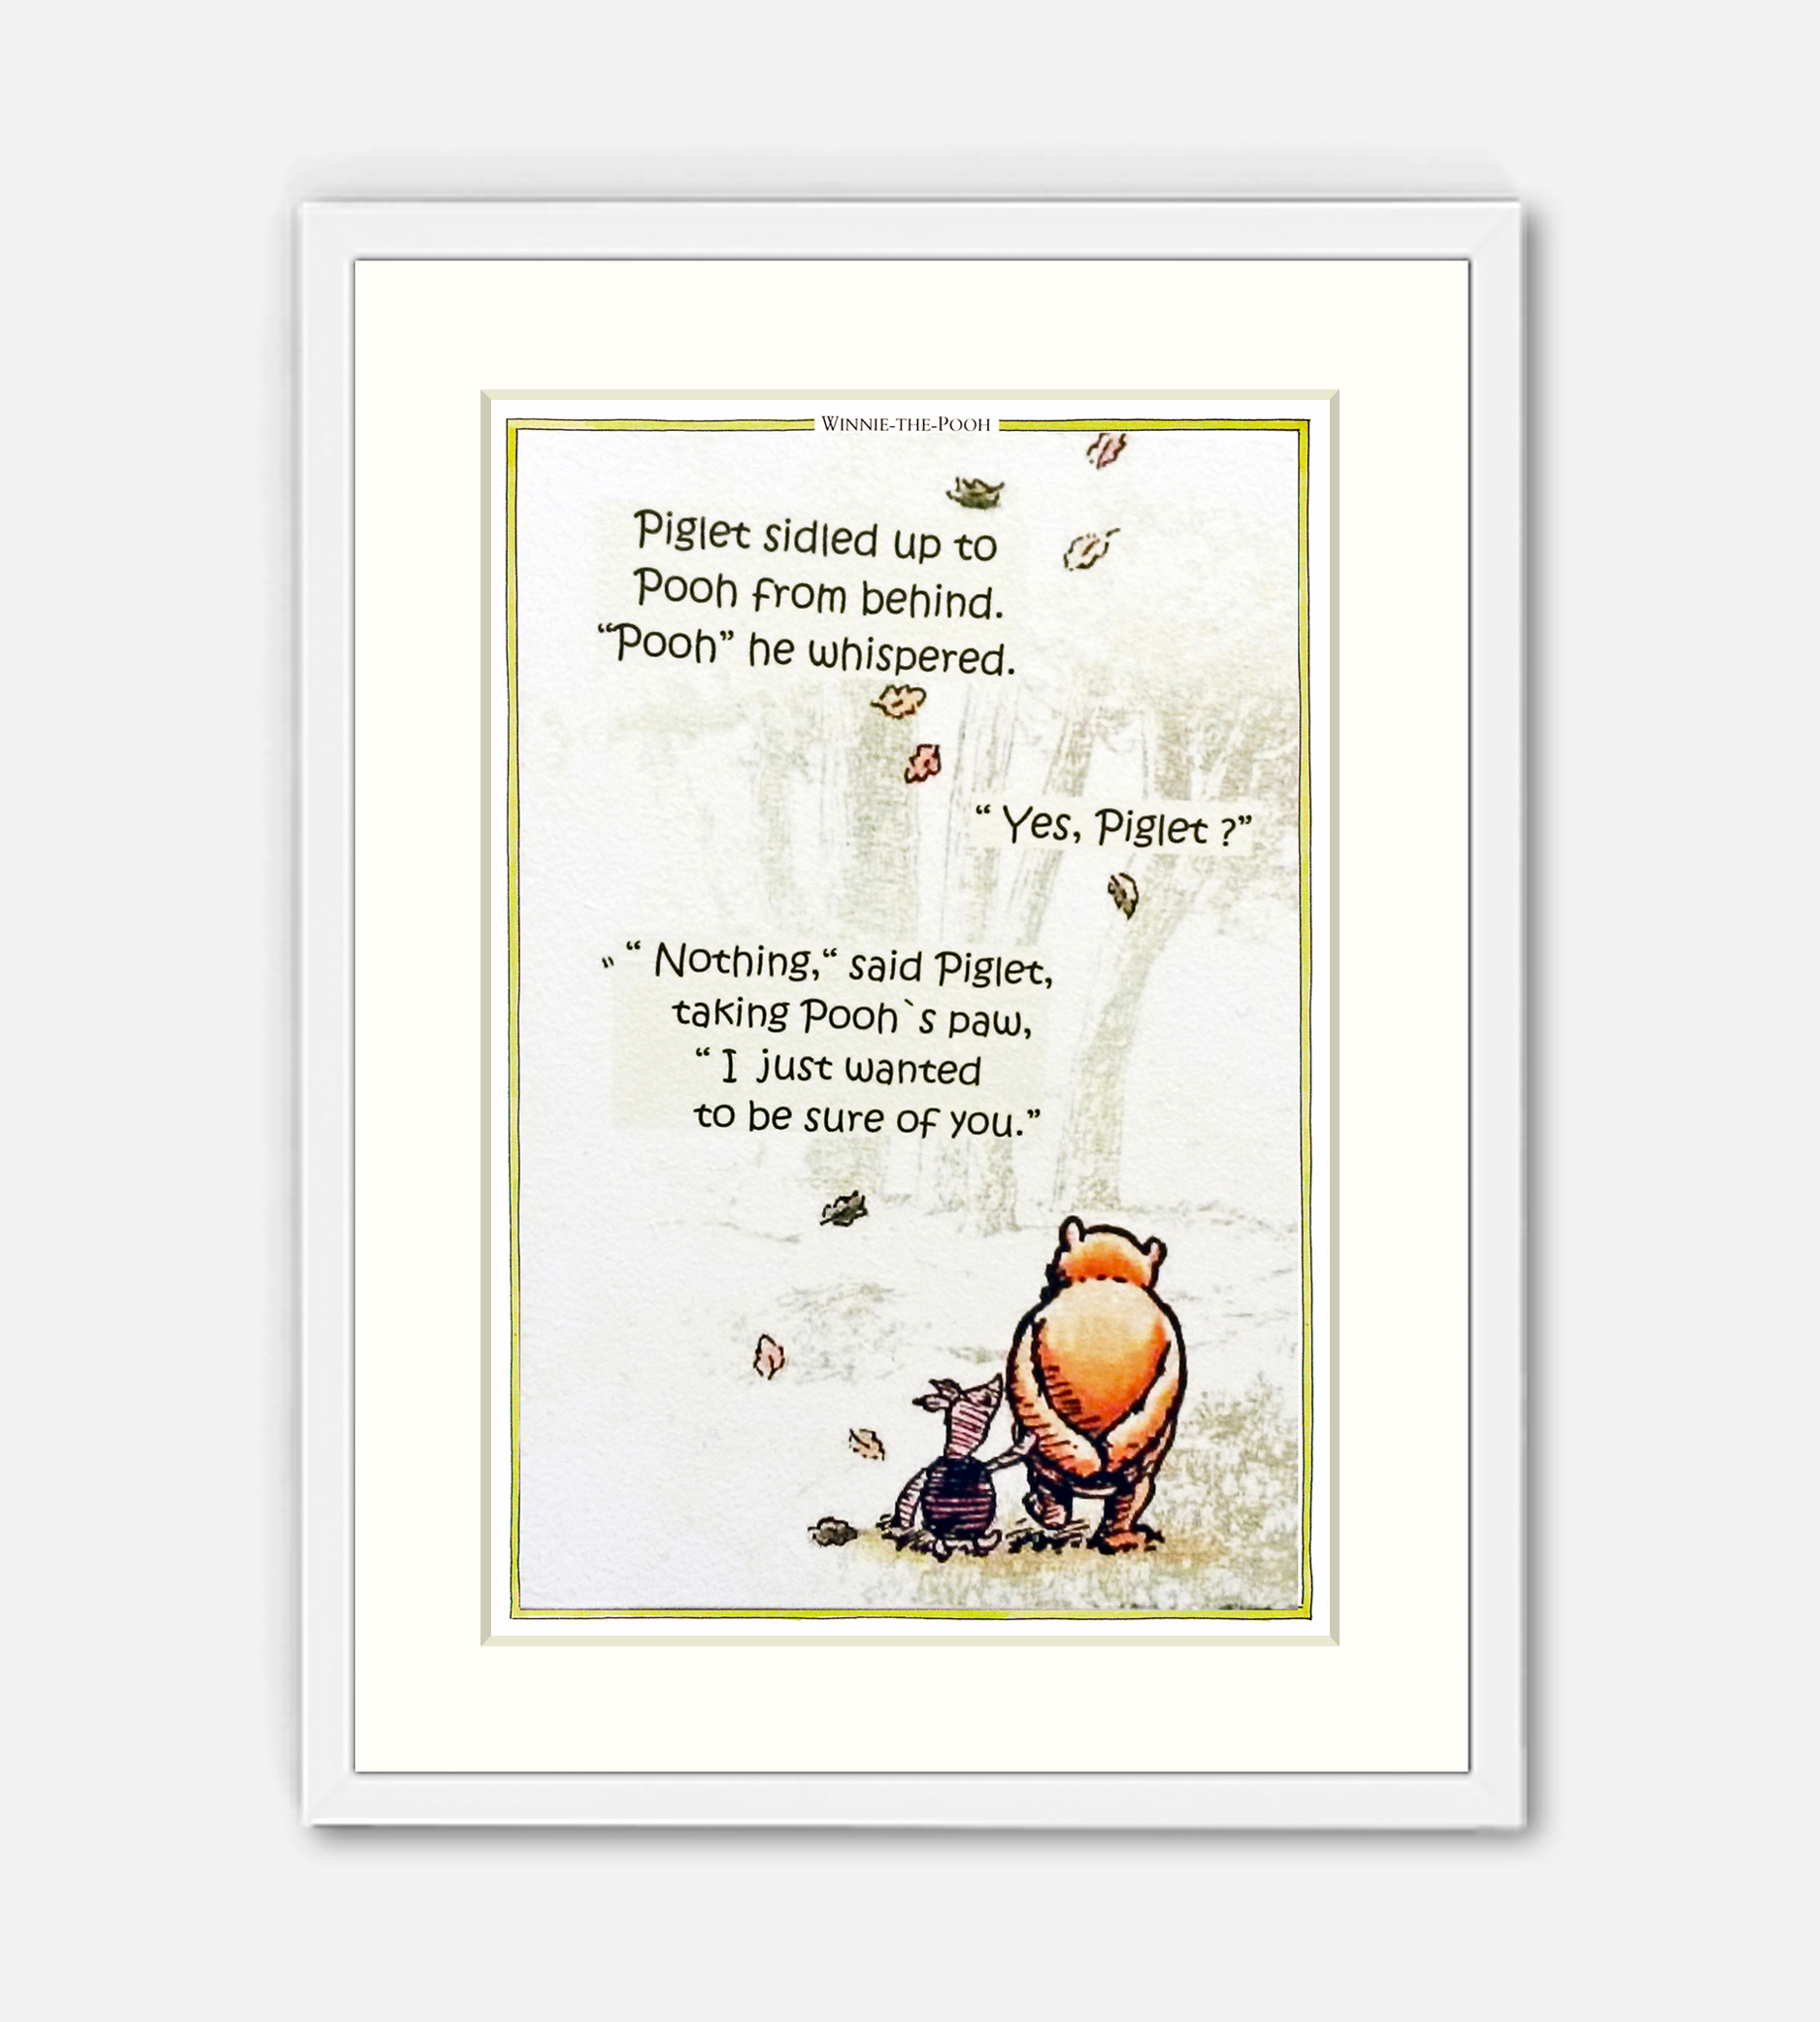 Piglet Sidled Up To Pooh Classic Winnie The Pooh Prints